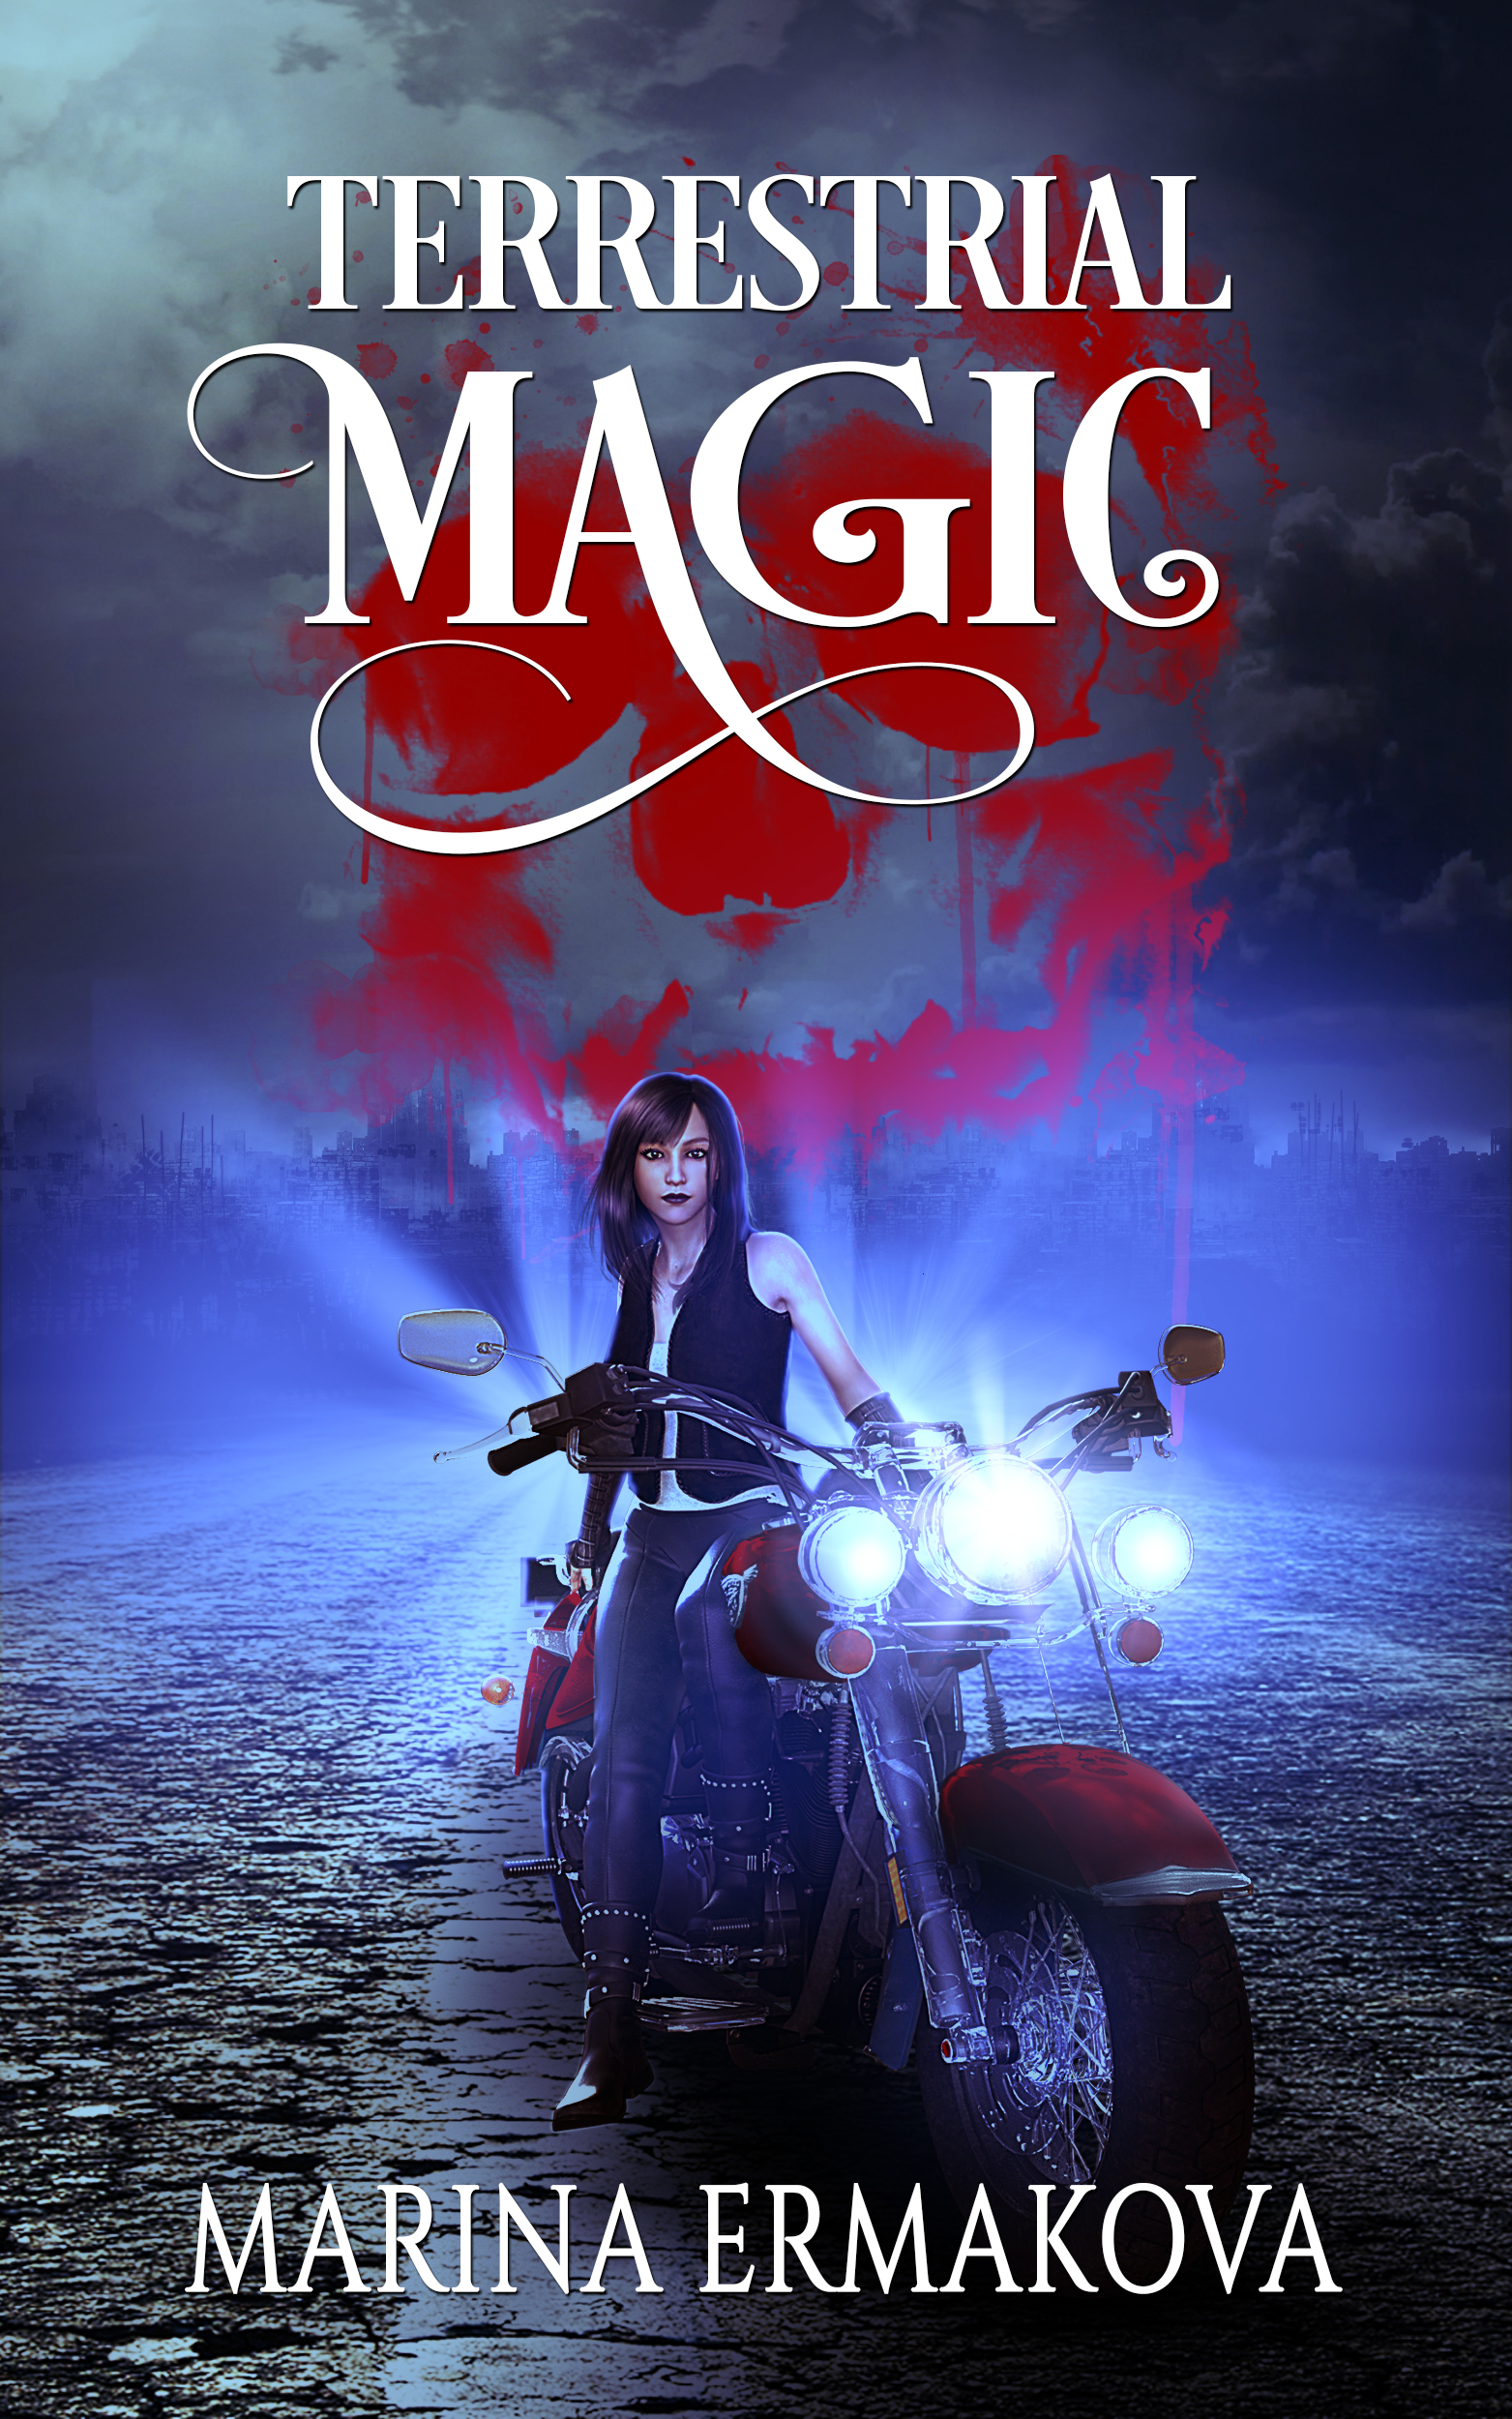 "A woman sits on a motorcycle on a dark, deserted road. The words read ""Terrestrial Magic, Marina Ermakova."""